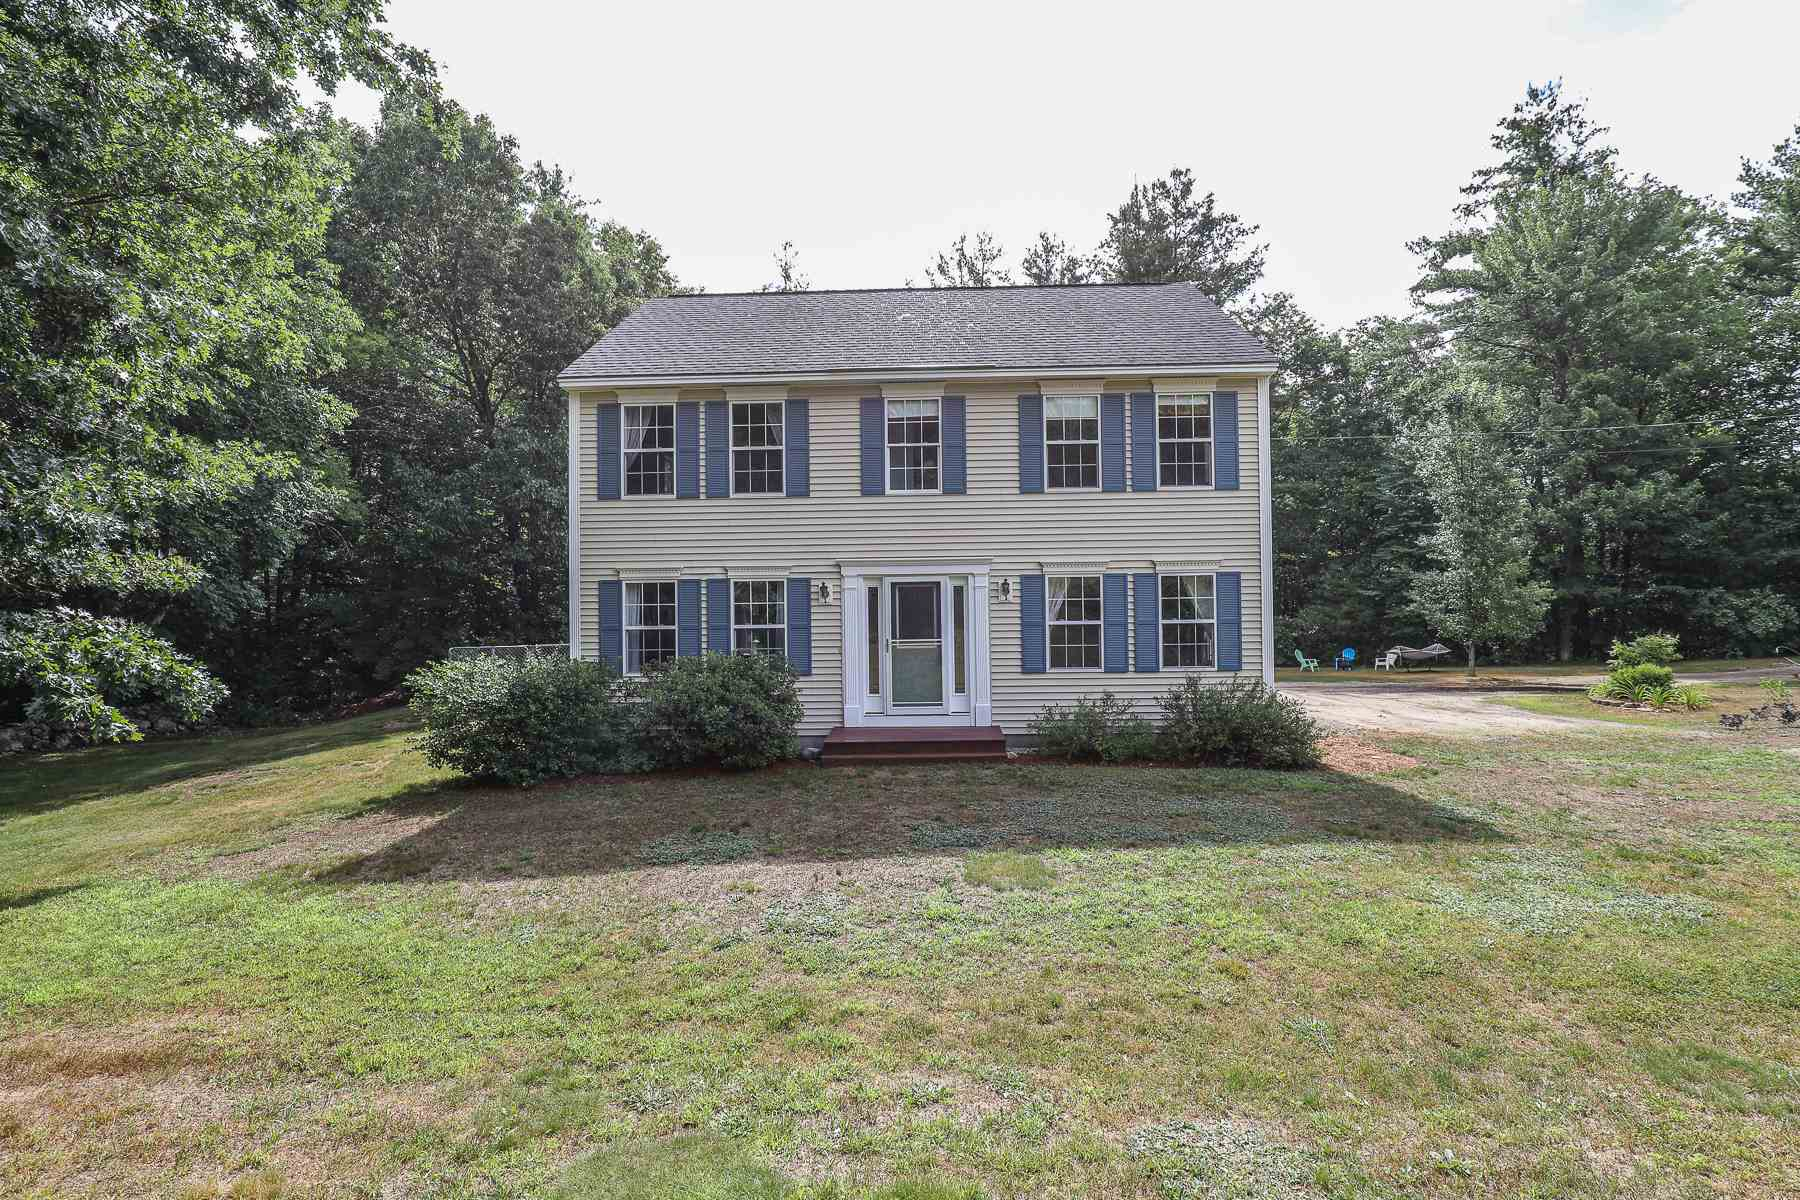 MLS 4815311: 390 Mason Road, Milford NH